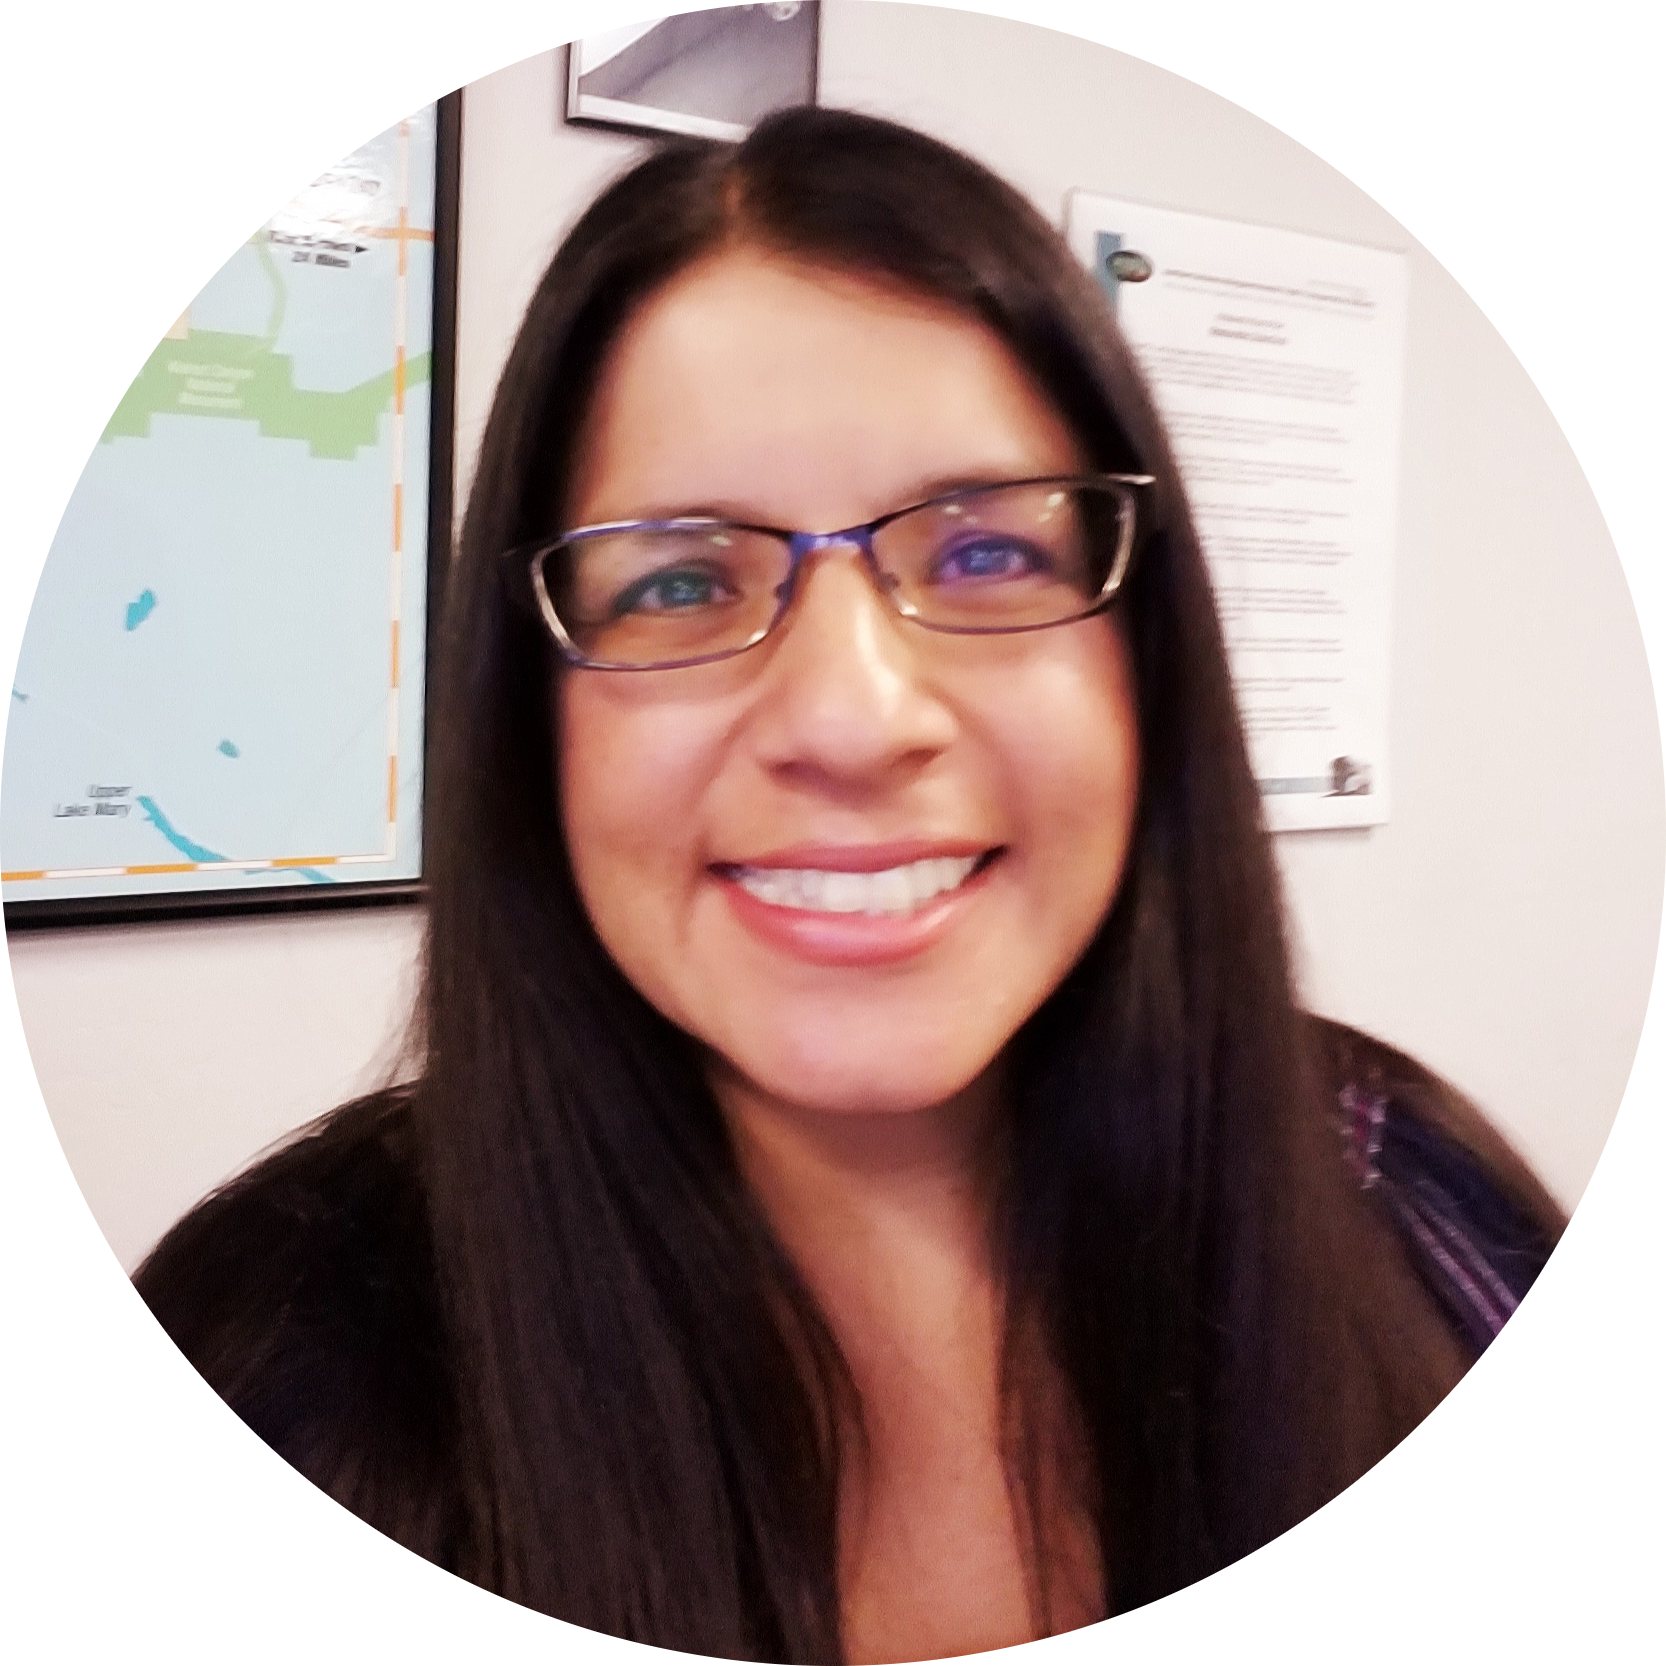 Lauree Battice, Business Manager with Northern Arizona Intergovernmental Public Transportation Authority